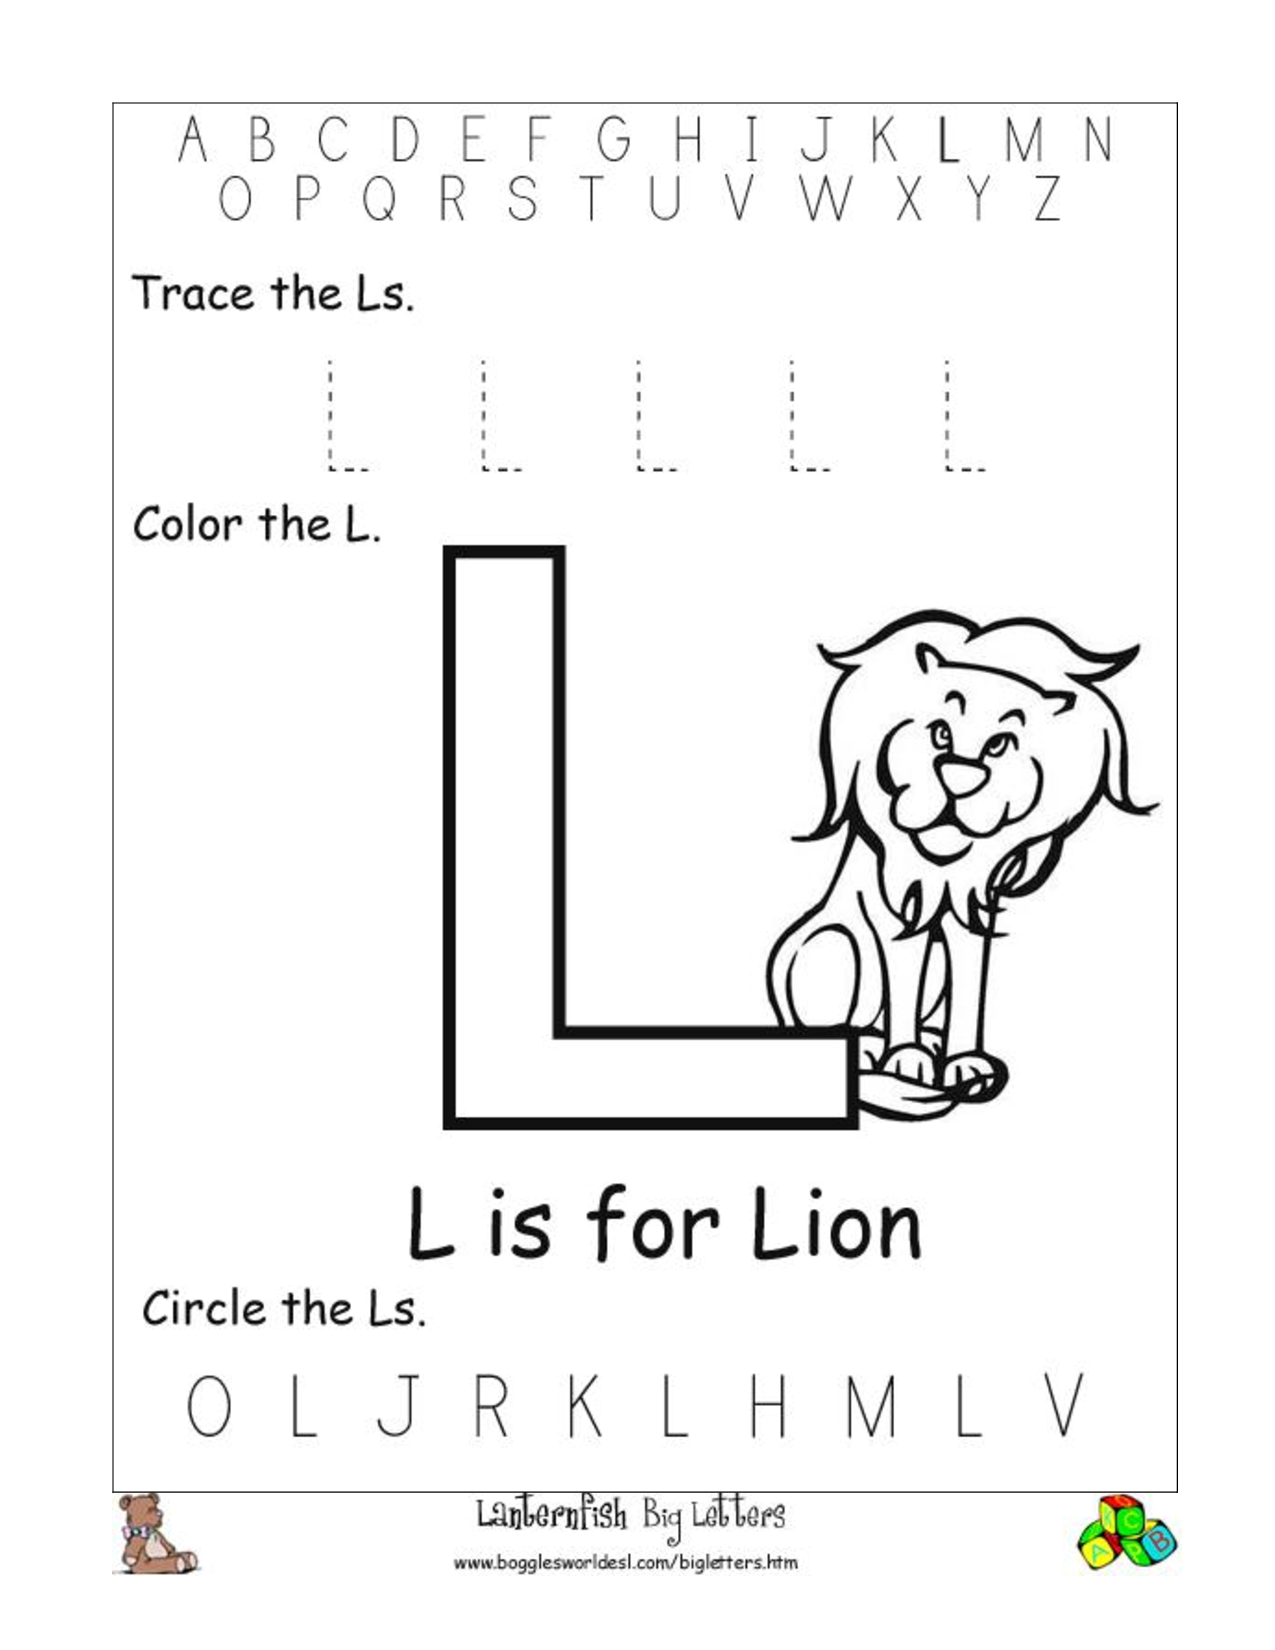 Worksheet Letter L Worksheets For Preschool 5 best images of printable preschool worksheets letter l free worksheets